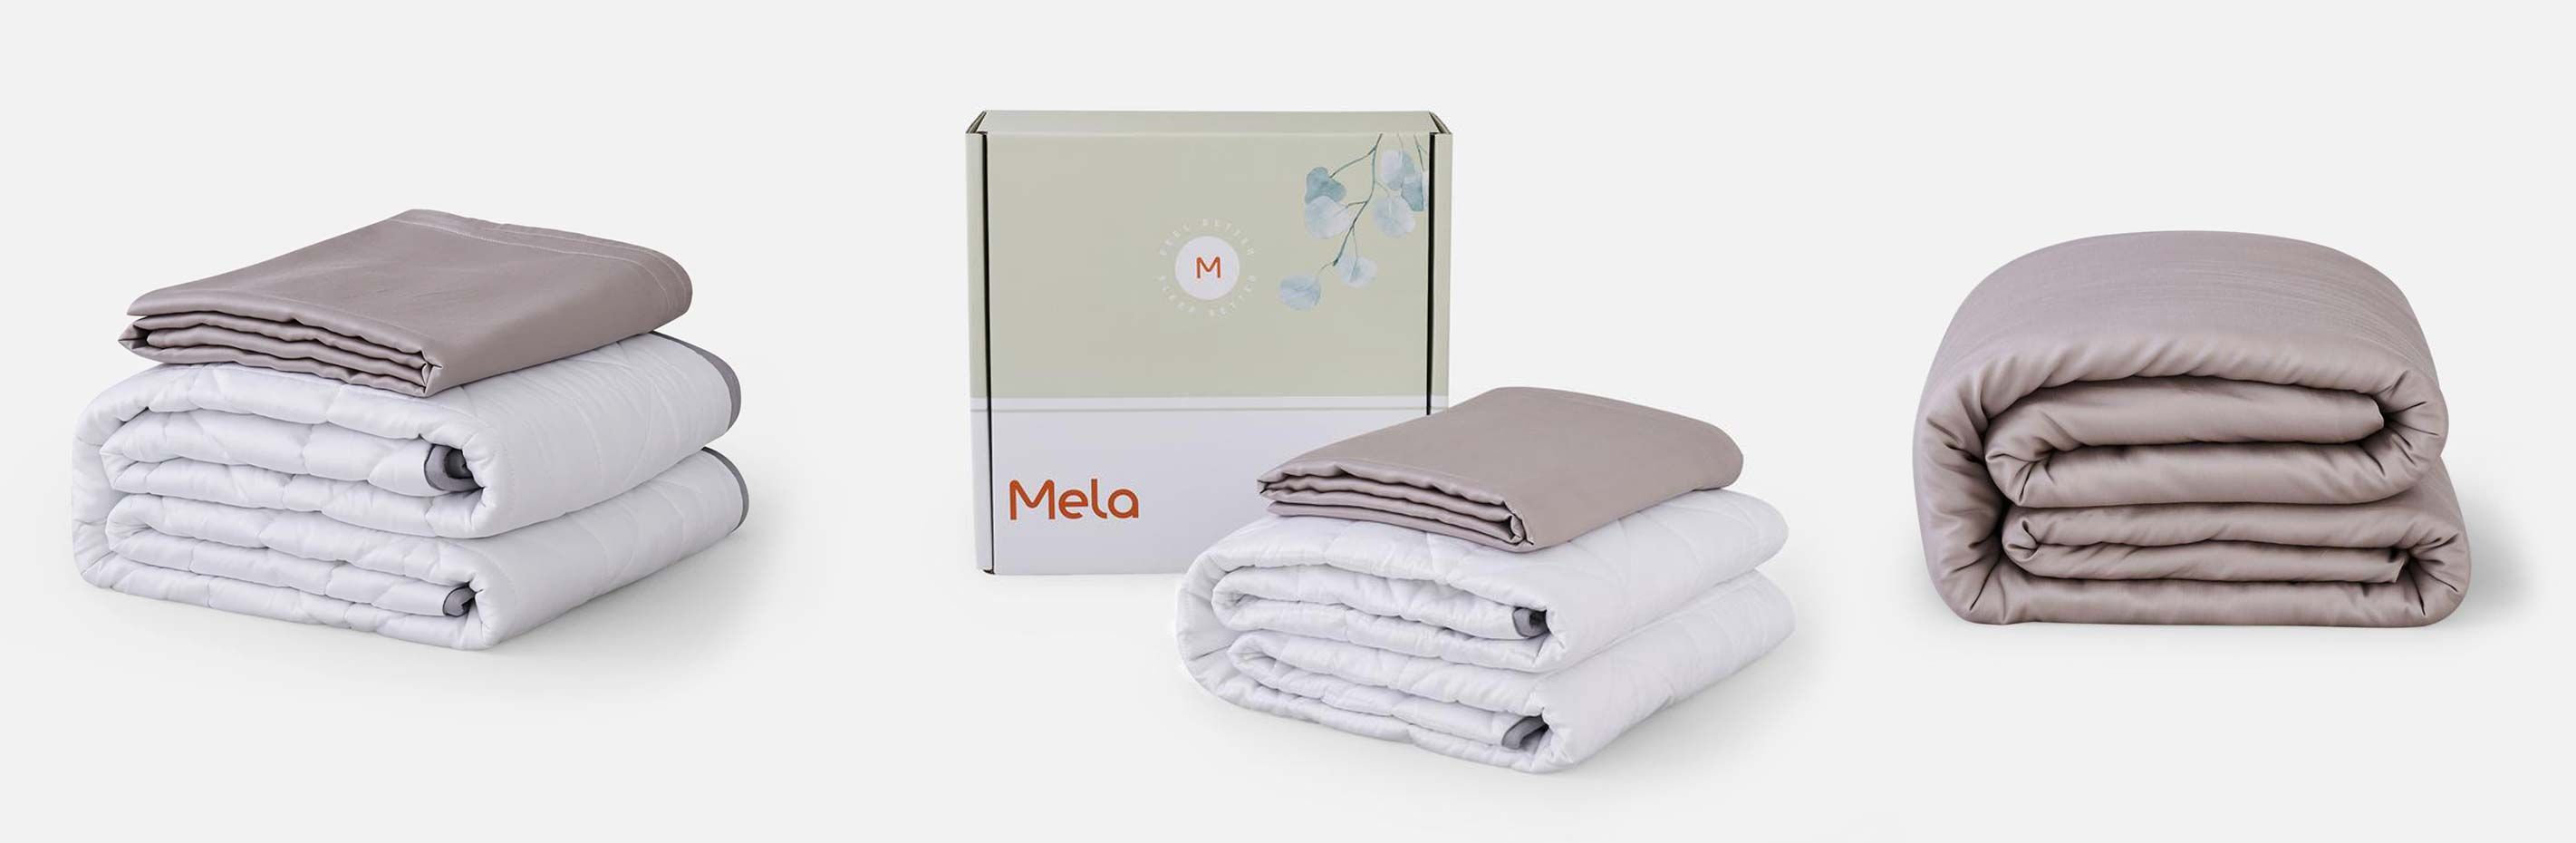 We tried a Mela Chill Weighted Blanket for 2 weeks, and here's what happened